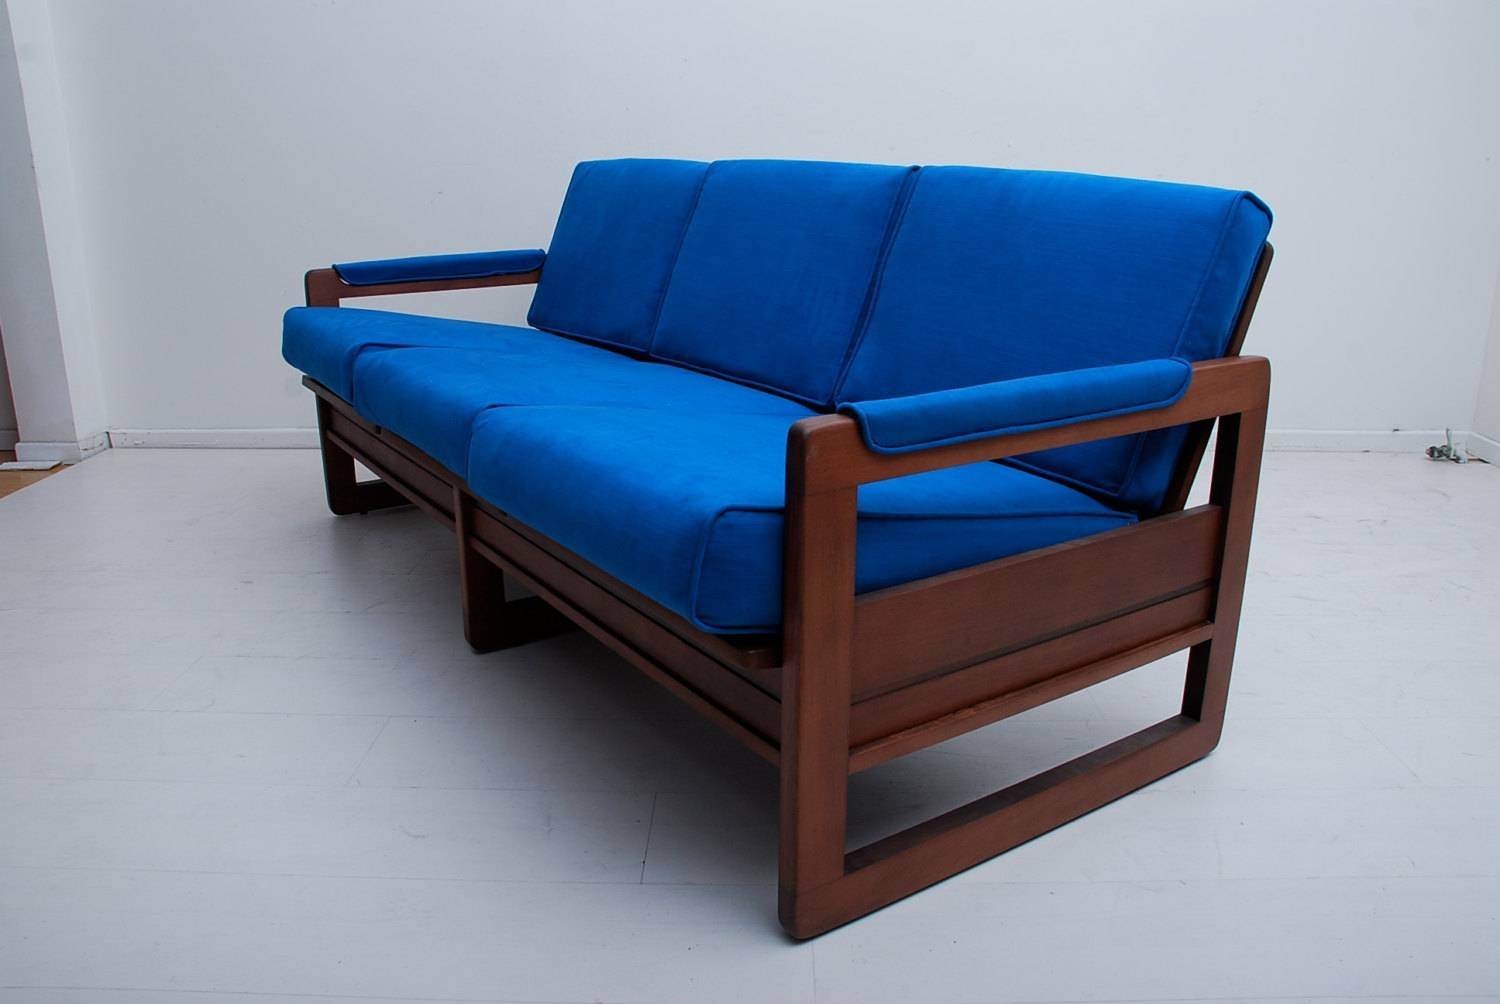 24 Simple Wooden Sofa To Use In Your Home | Keribrownhomes with regard to Blue Sofa Chairs (Image 1 of 30)